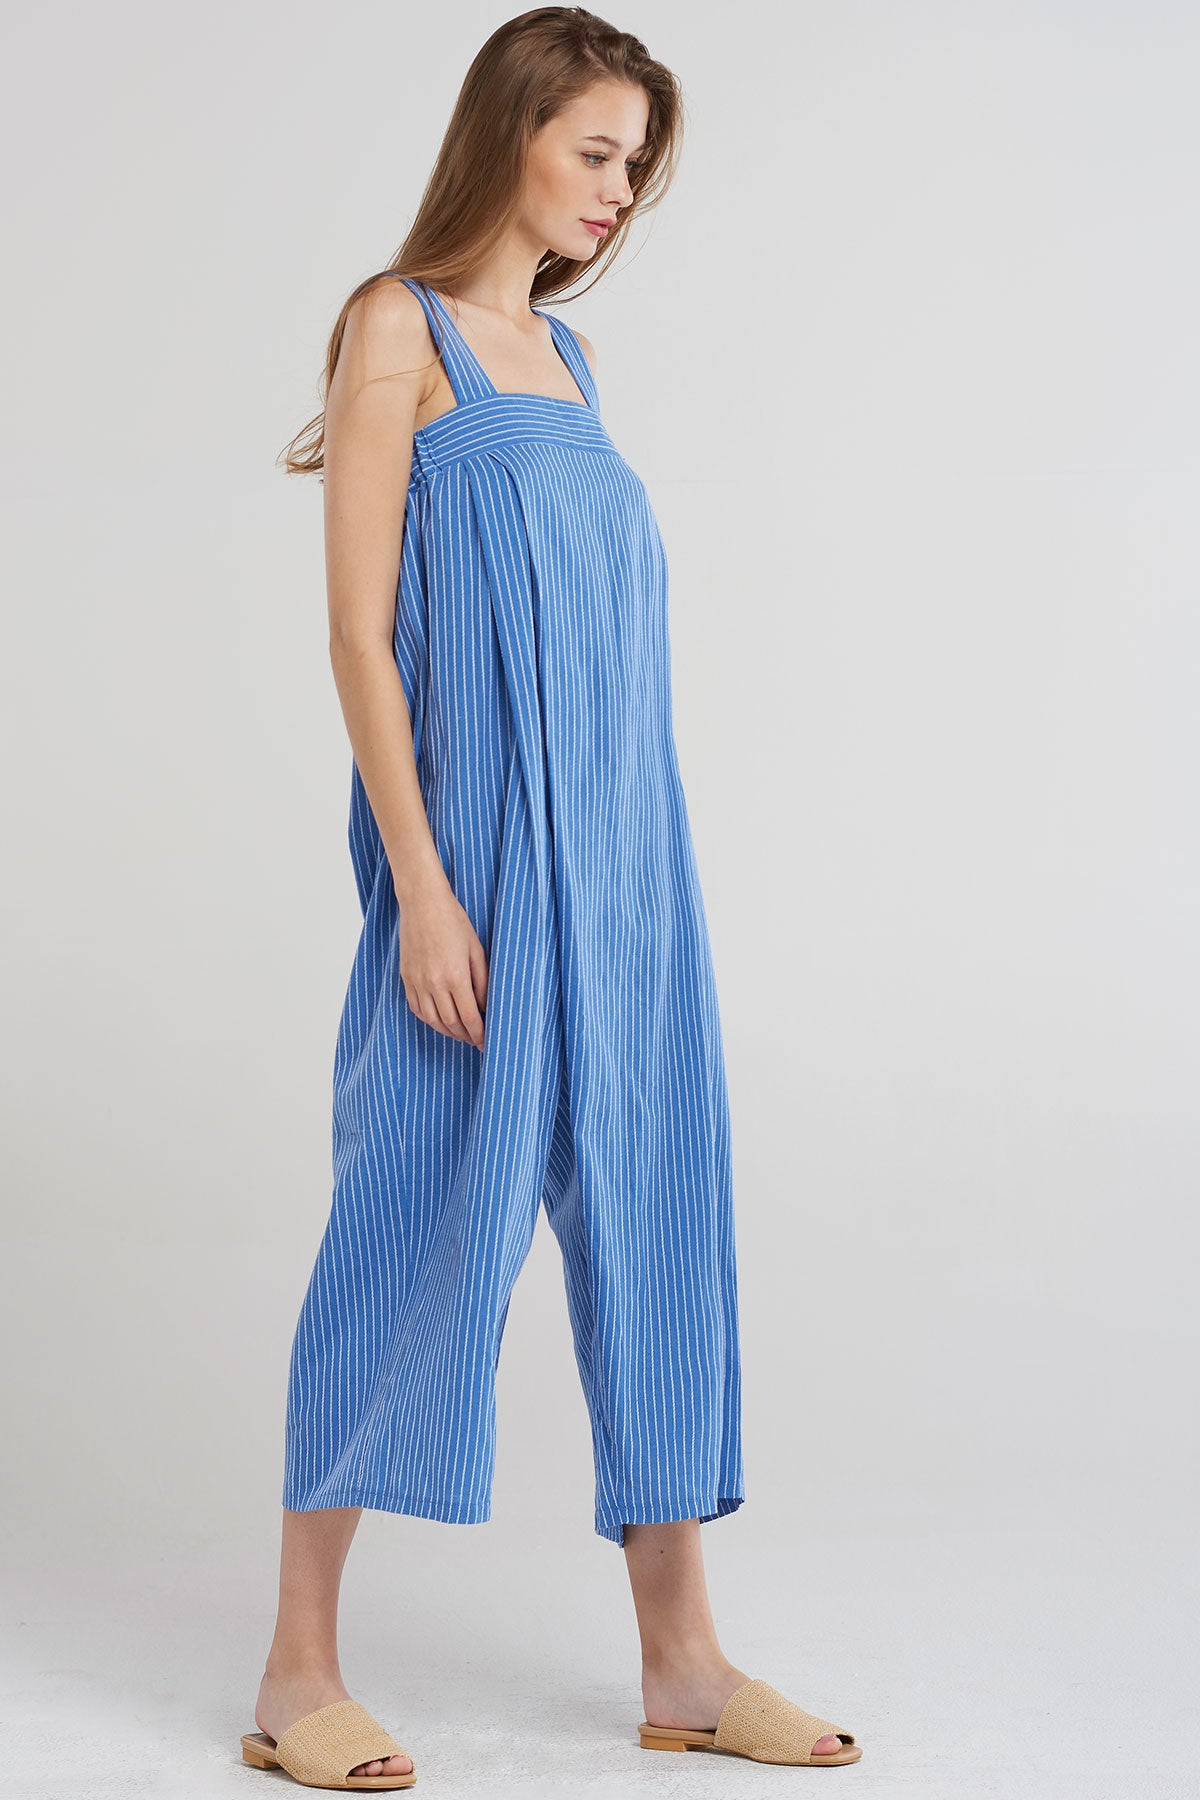 Avah Pinstripe Tomboy Jumpsuit-Skyblue